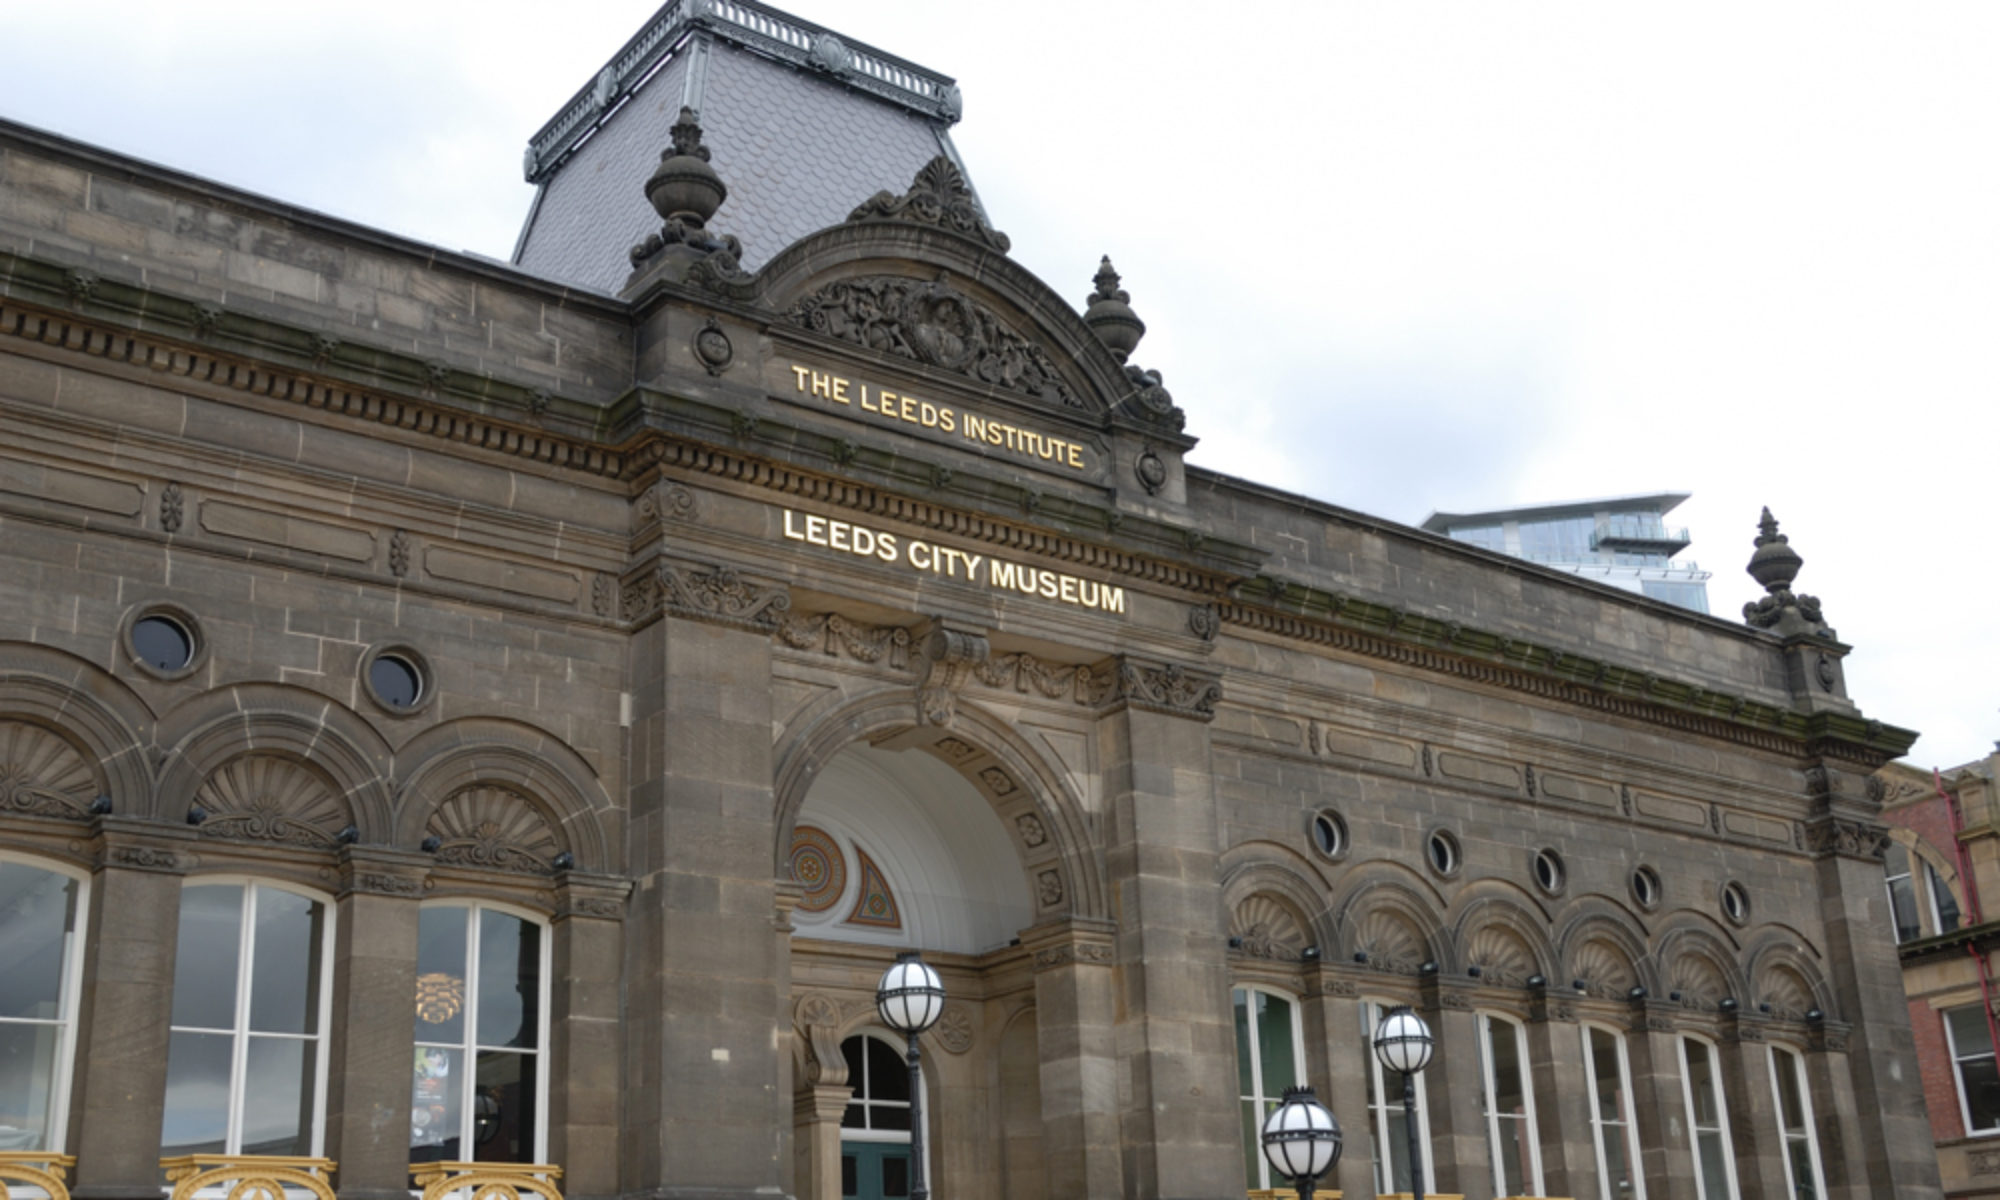 Friends of Leeds City Museums